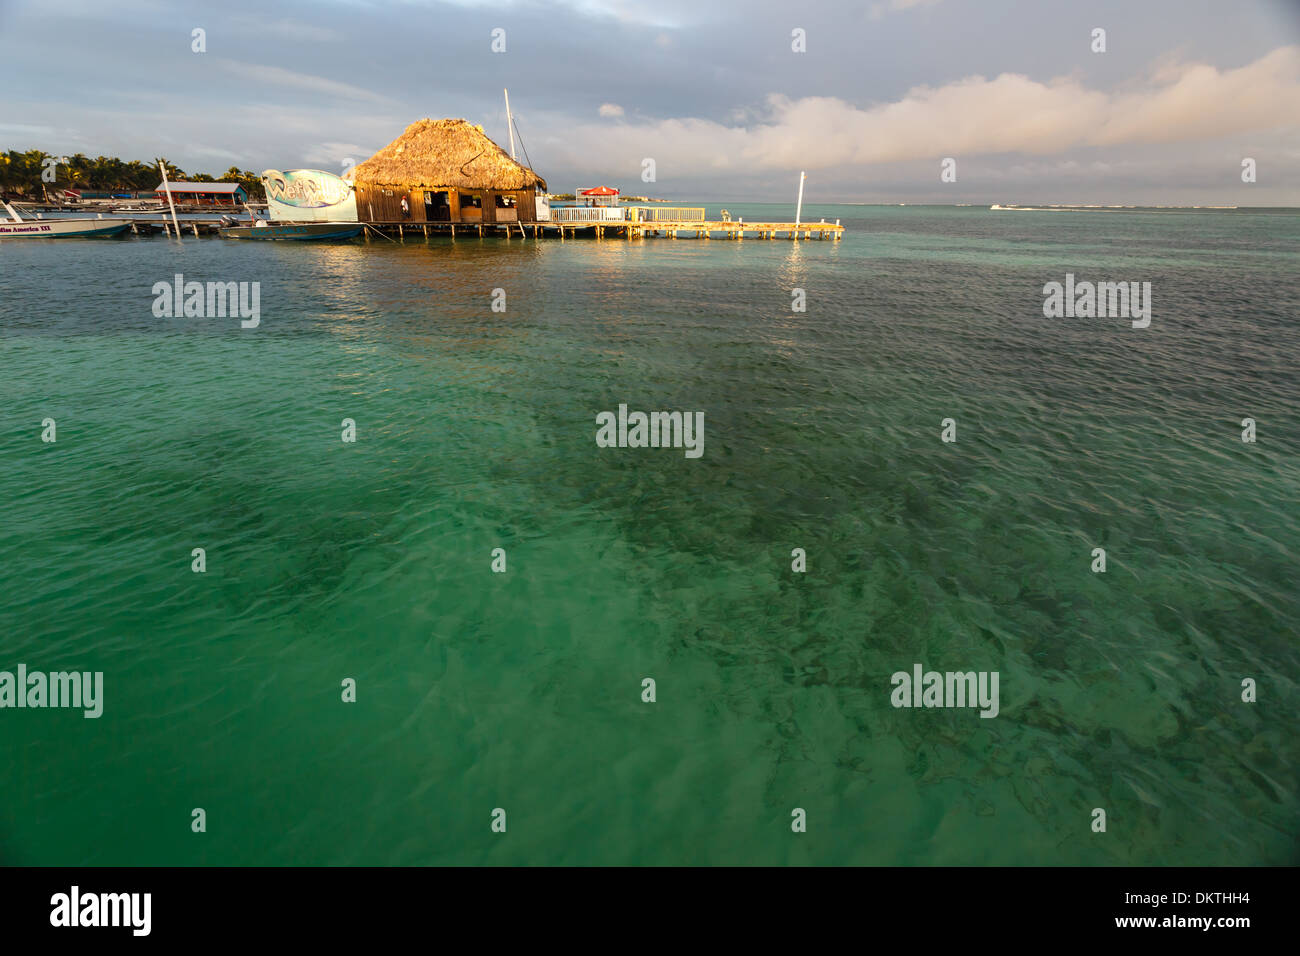 Beautiful turquoise water of Caribbean sea extend invitingly to snorkelers before commercial dock on Ambergris Caye in Belize - Stock Image